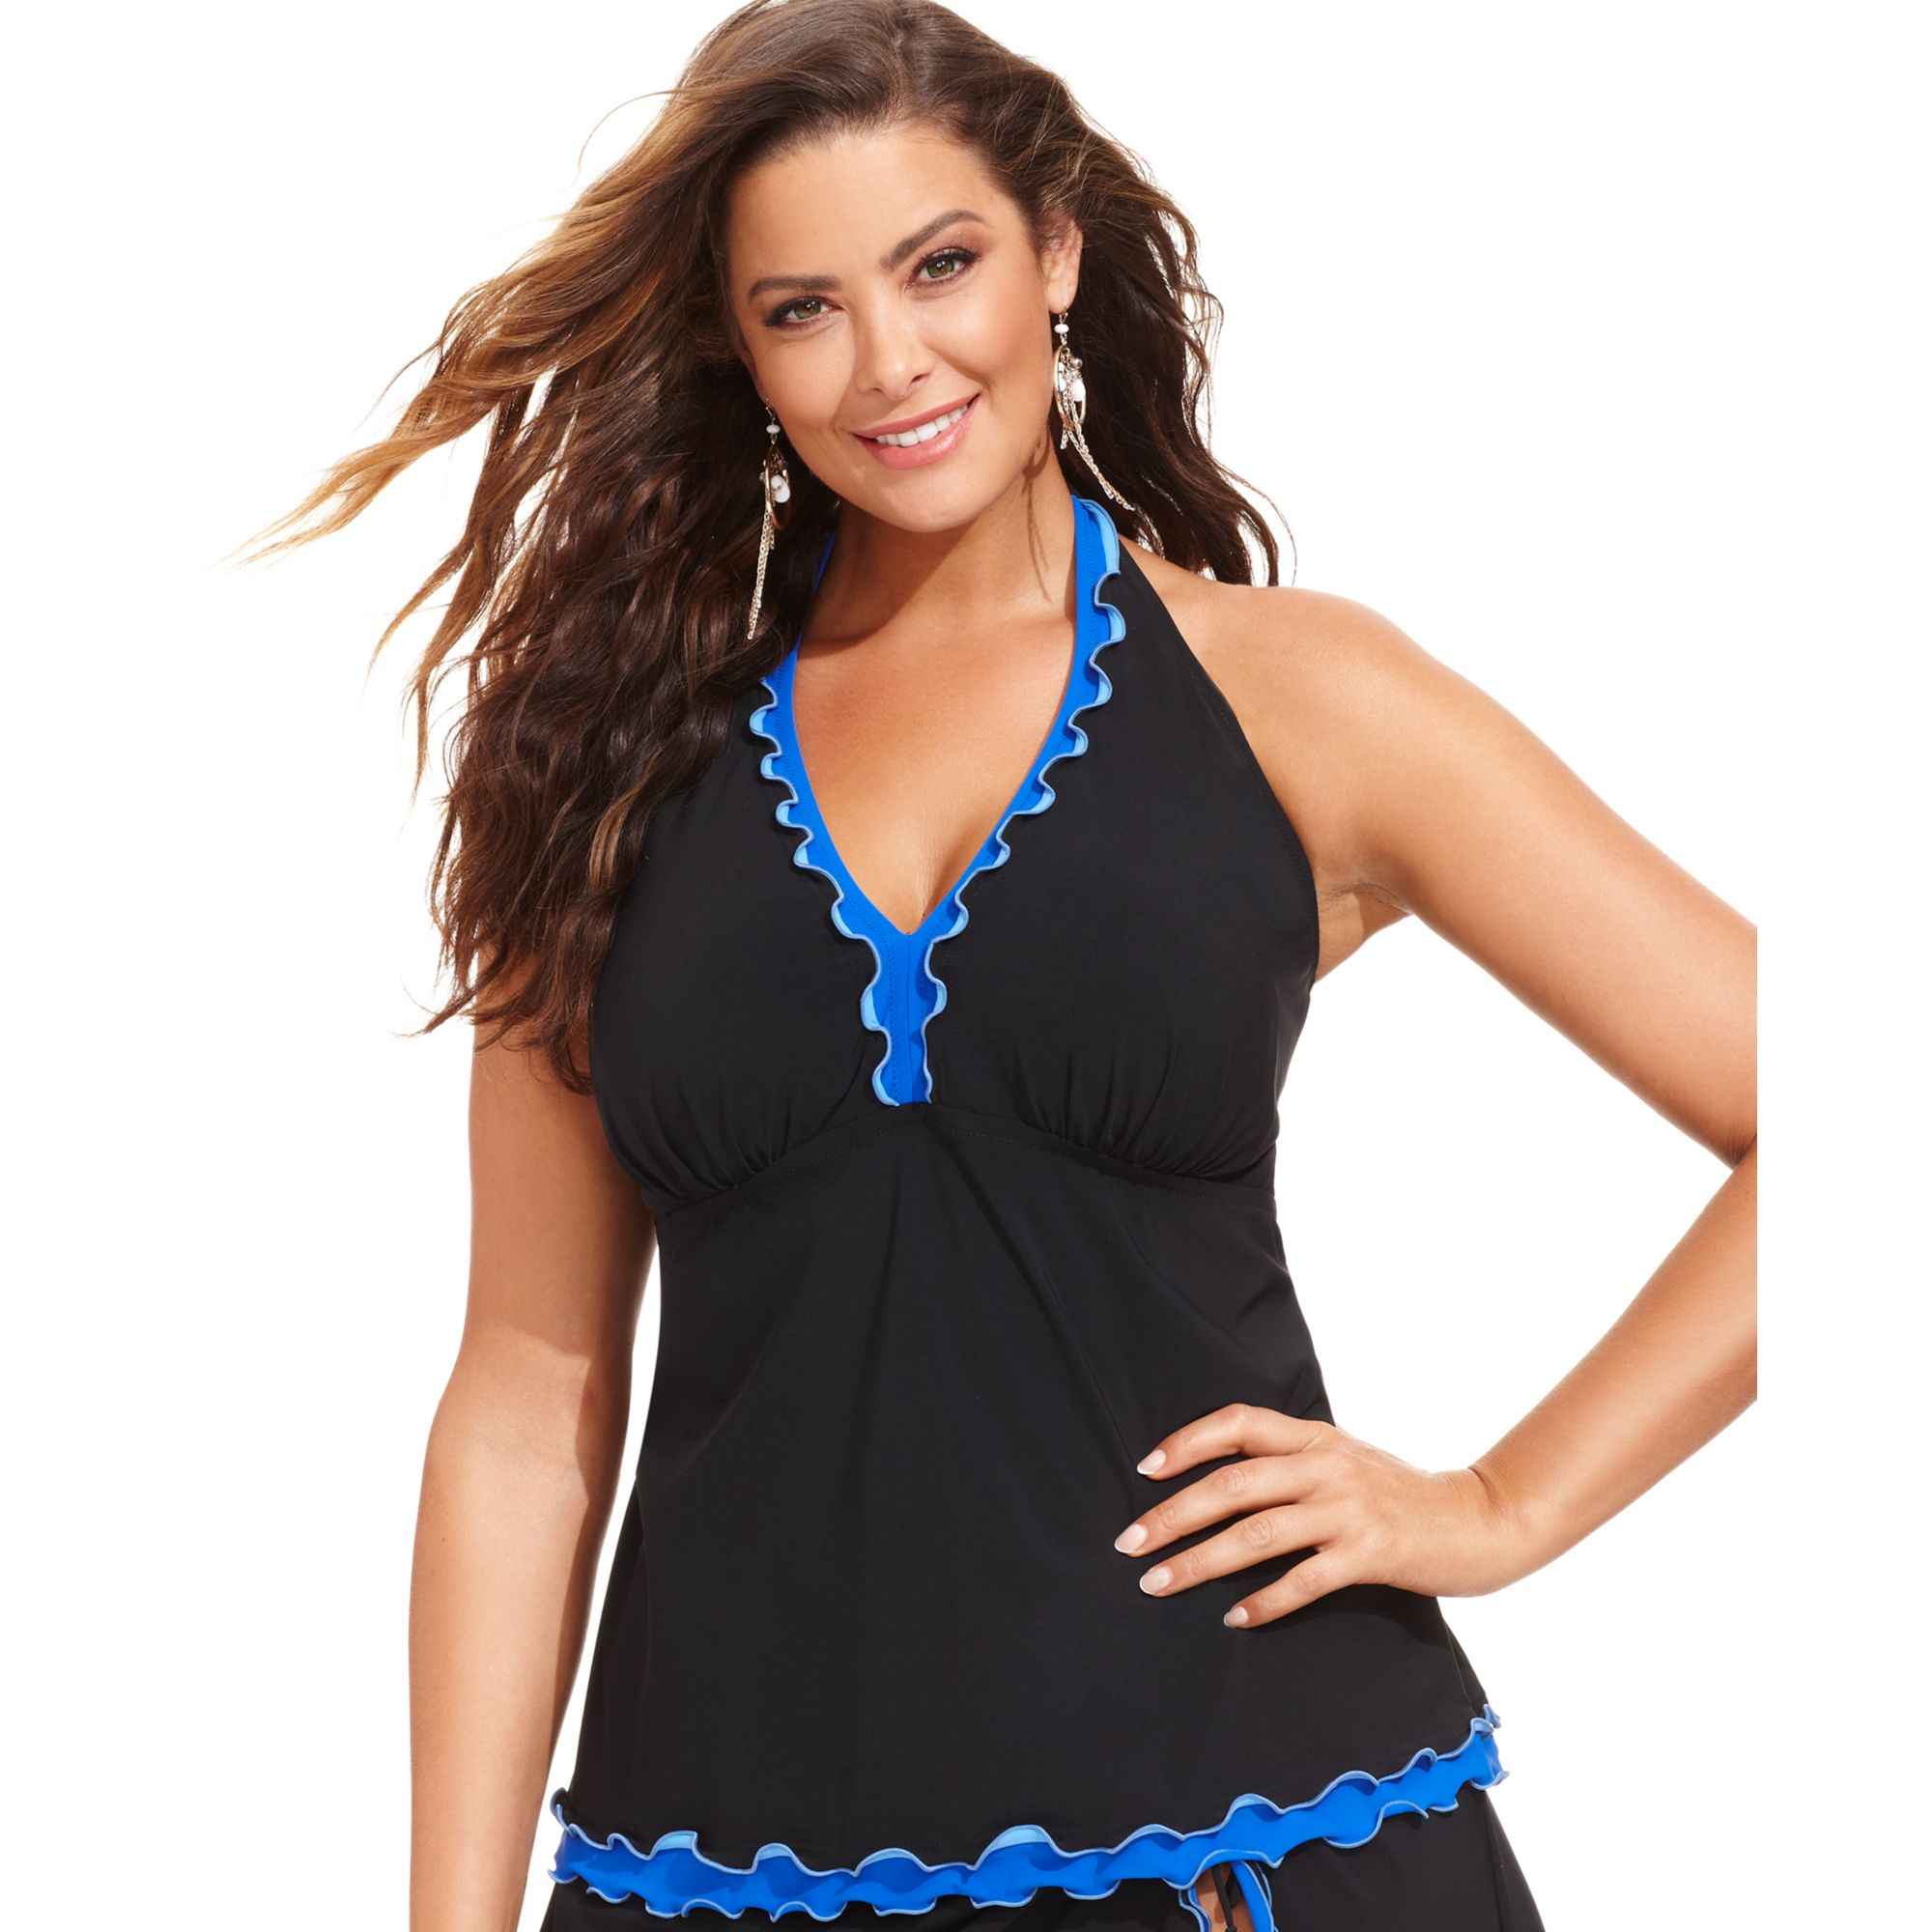 Plus Size Halter Tops Wardrobe Mag